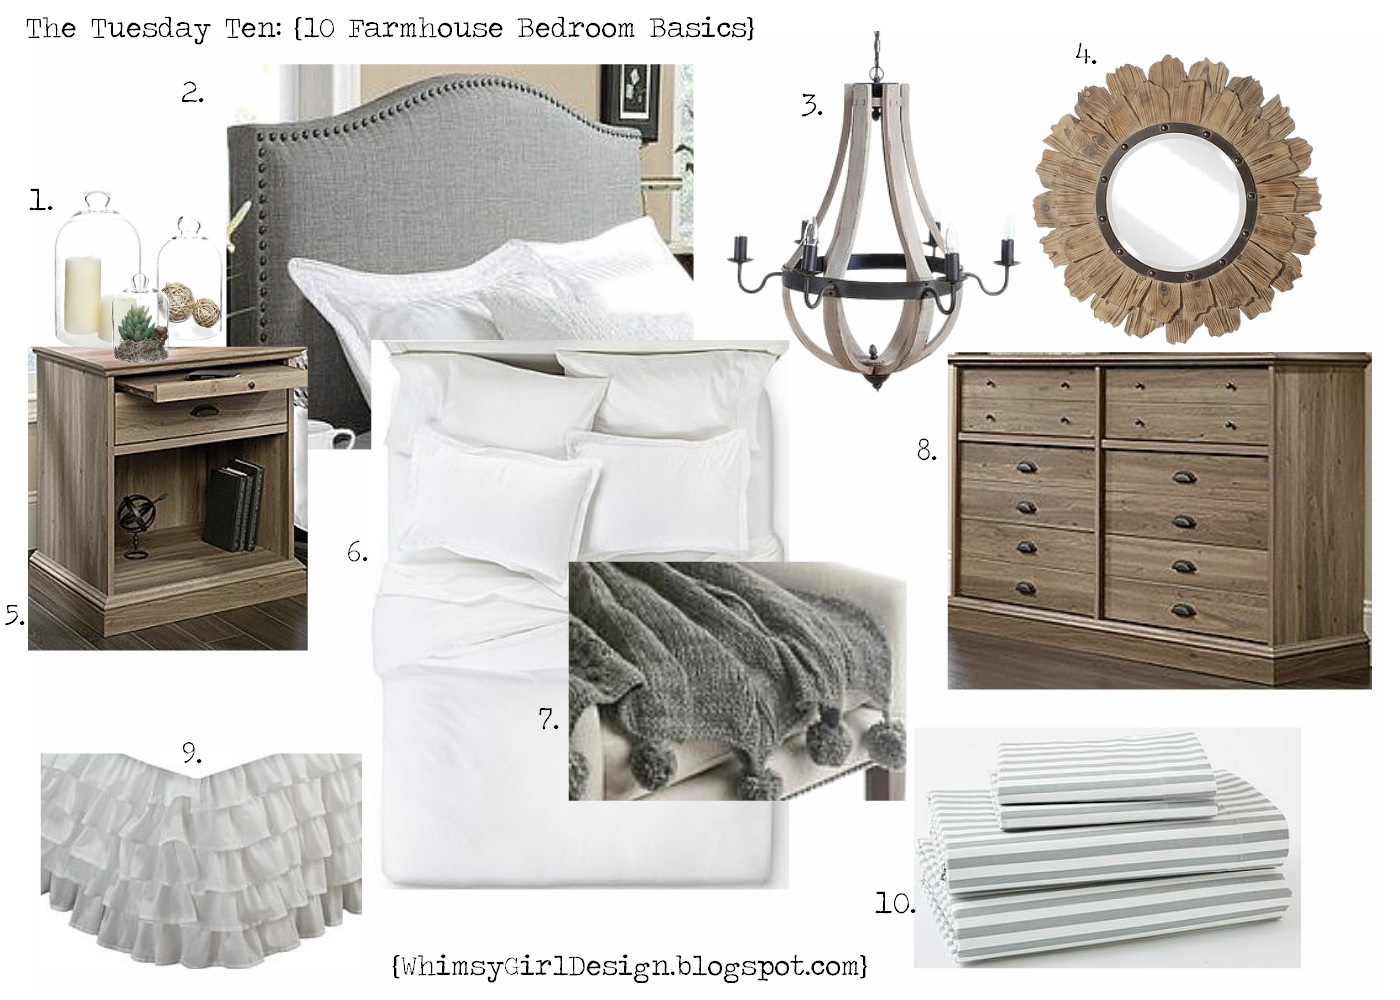 A Ruffled Bed Skirt Rustic Lighting Simple Accessories And Beautiful Wood Furniture Would Make This Bedroom Cozy Serene Retreat